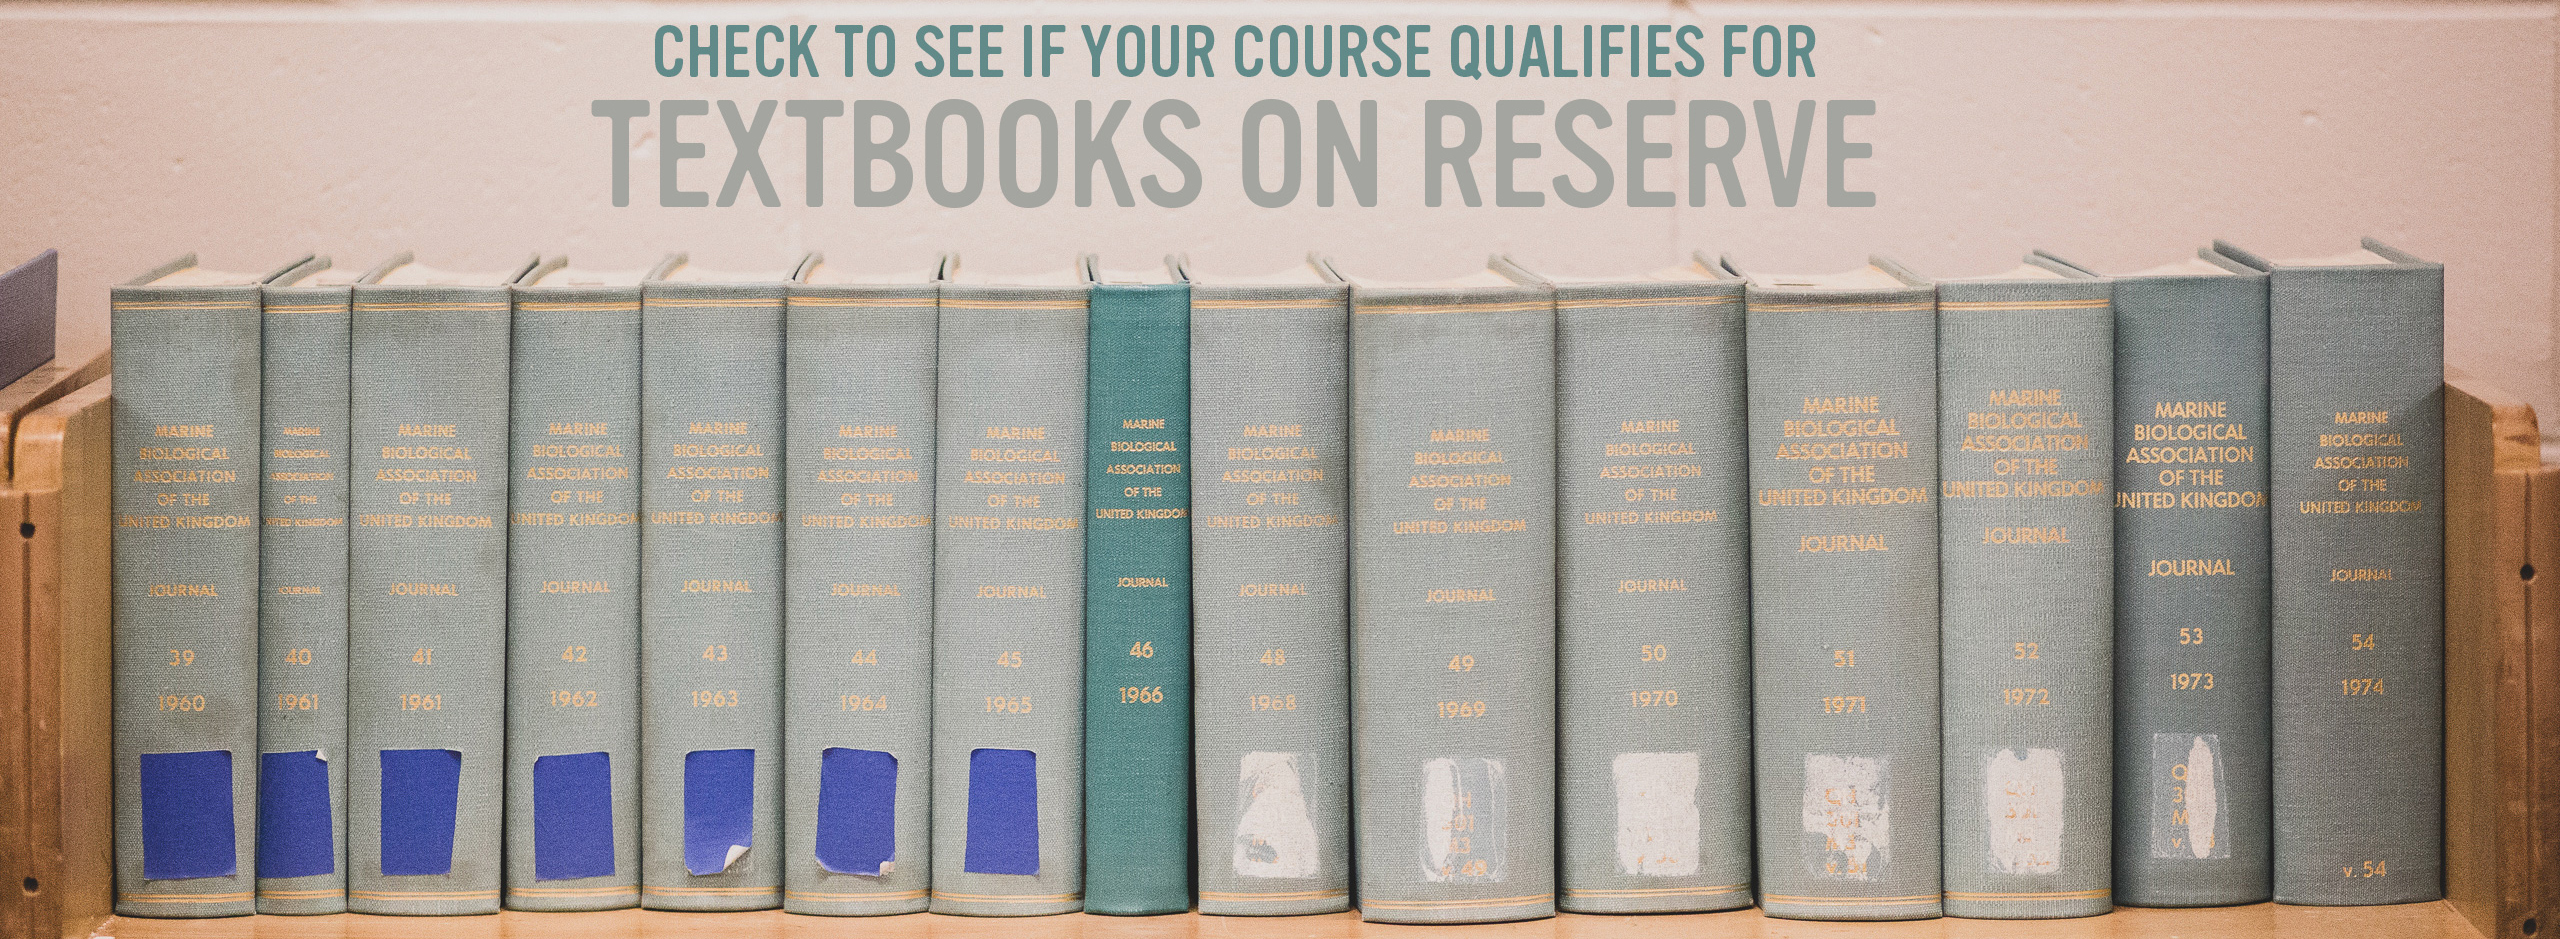 click here to see if your course qualifies for textbooks on reserve